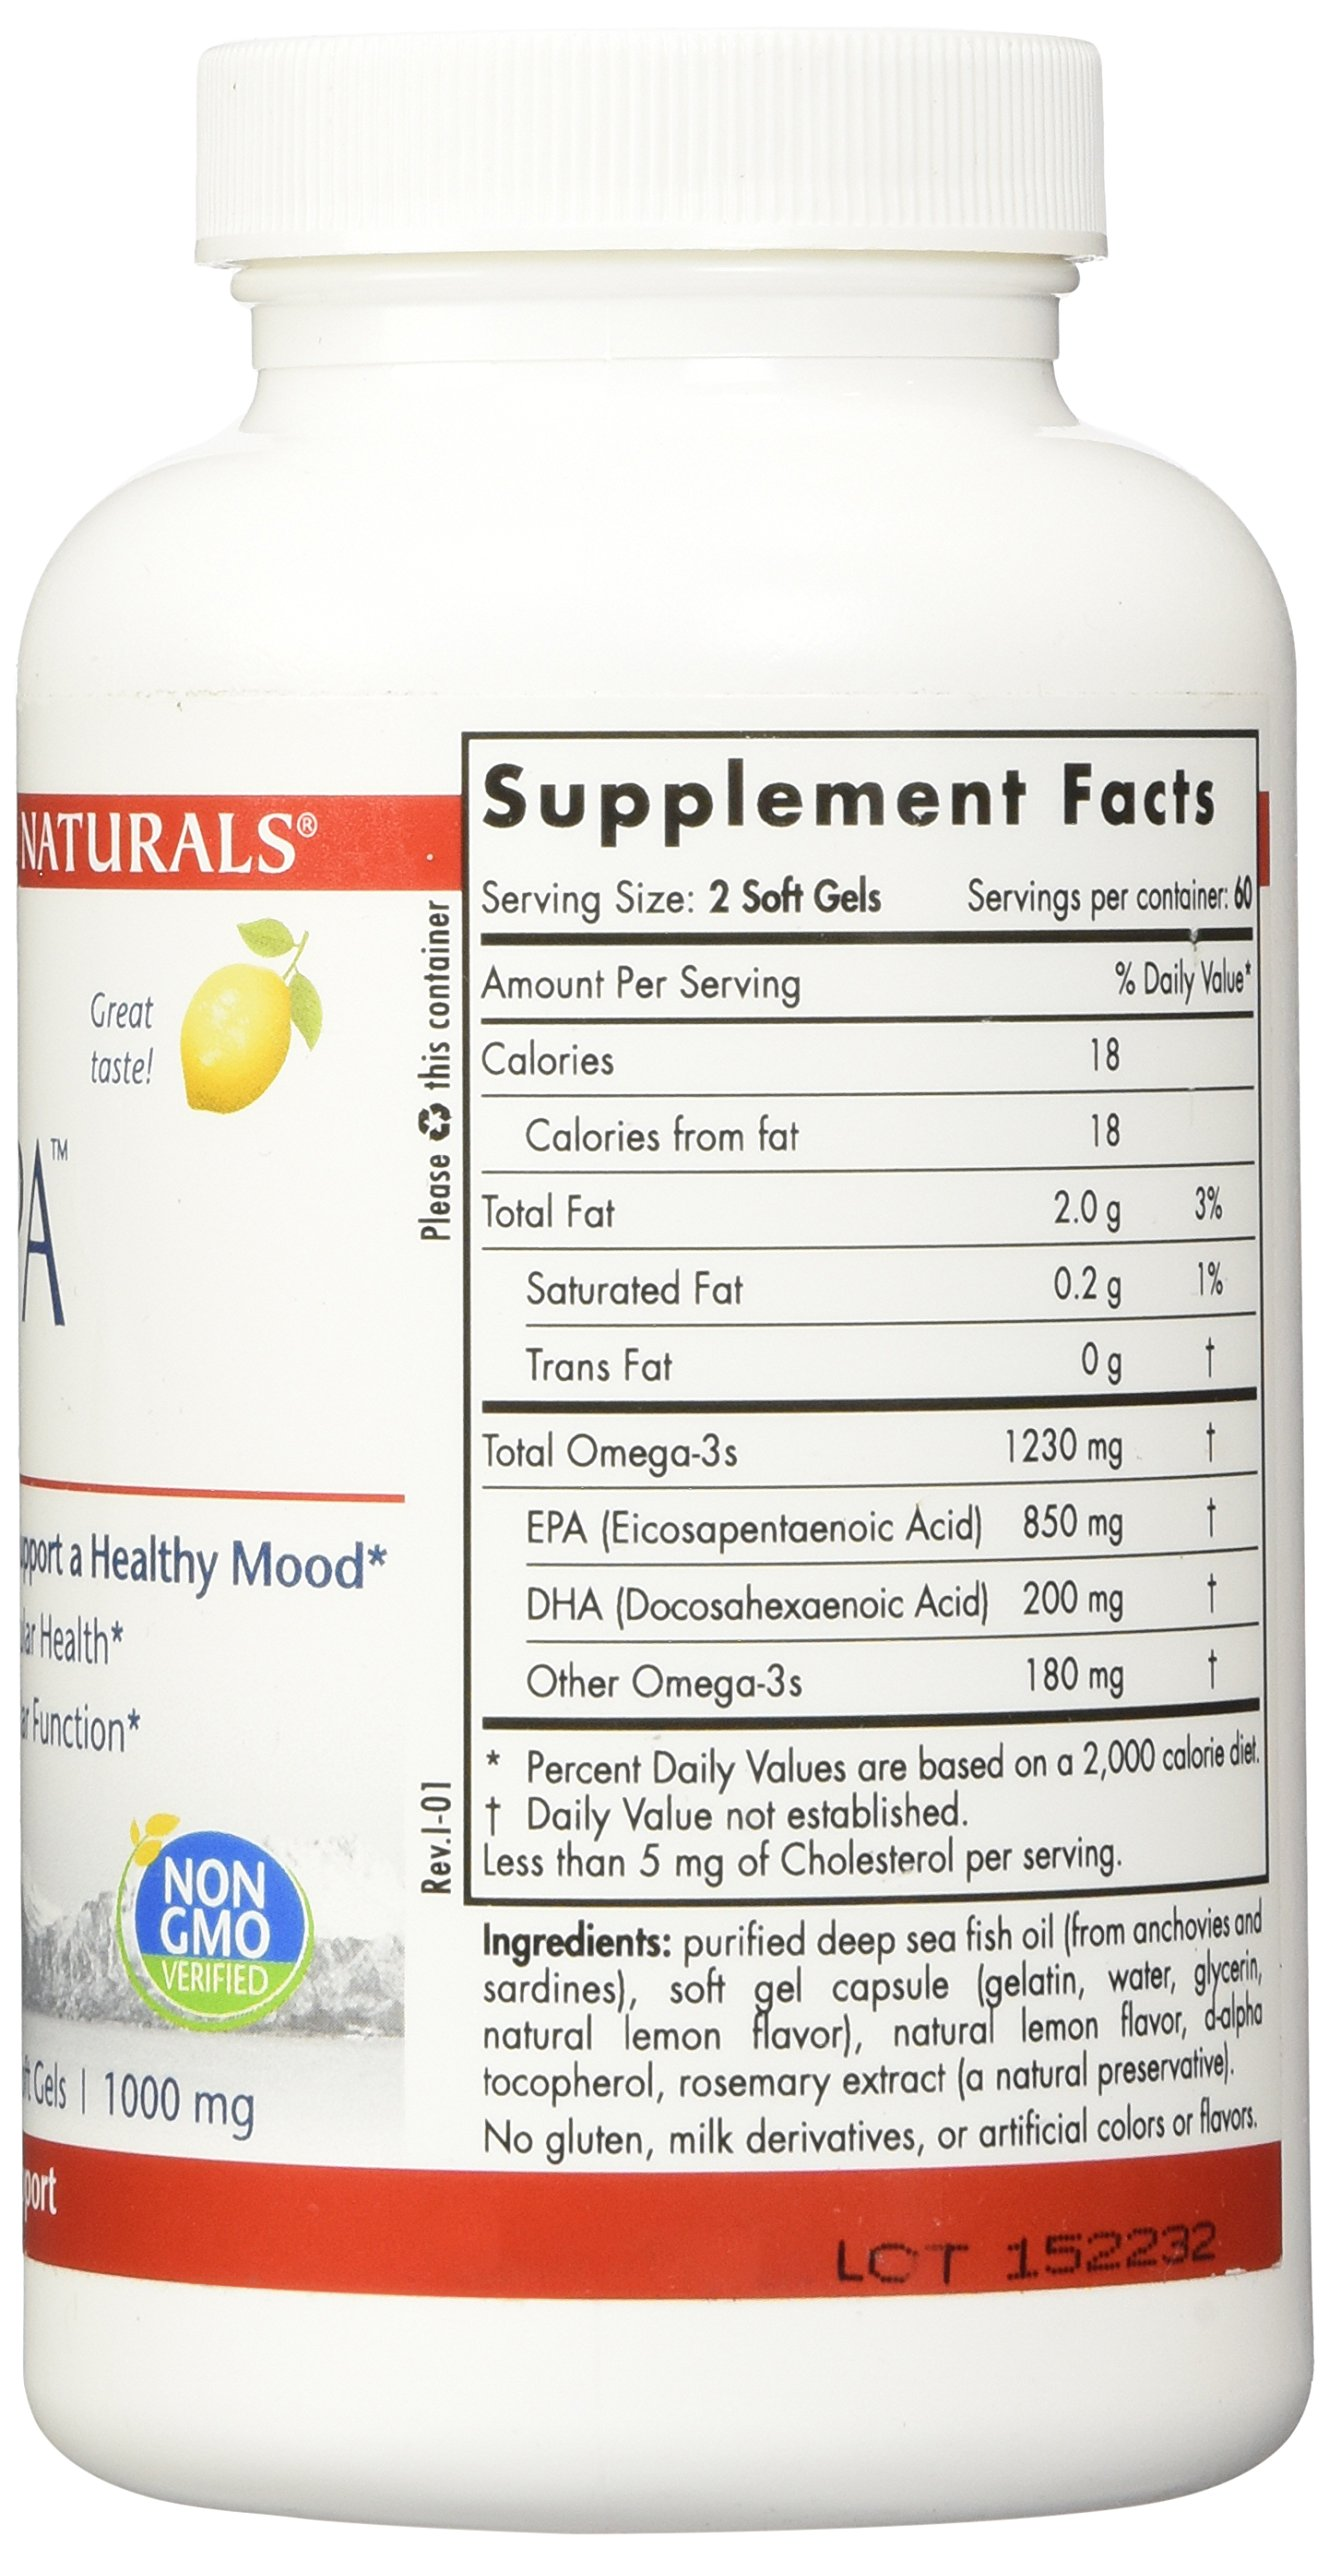 Nordic Naturals Pro - ProEPA, Promotes Cardiovascular Health, Supports Gastrointestinal Health and a Healthy Mood - Lemon Flavored 120 Soft Gels by Nordic Naturals (Image #4)